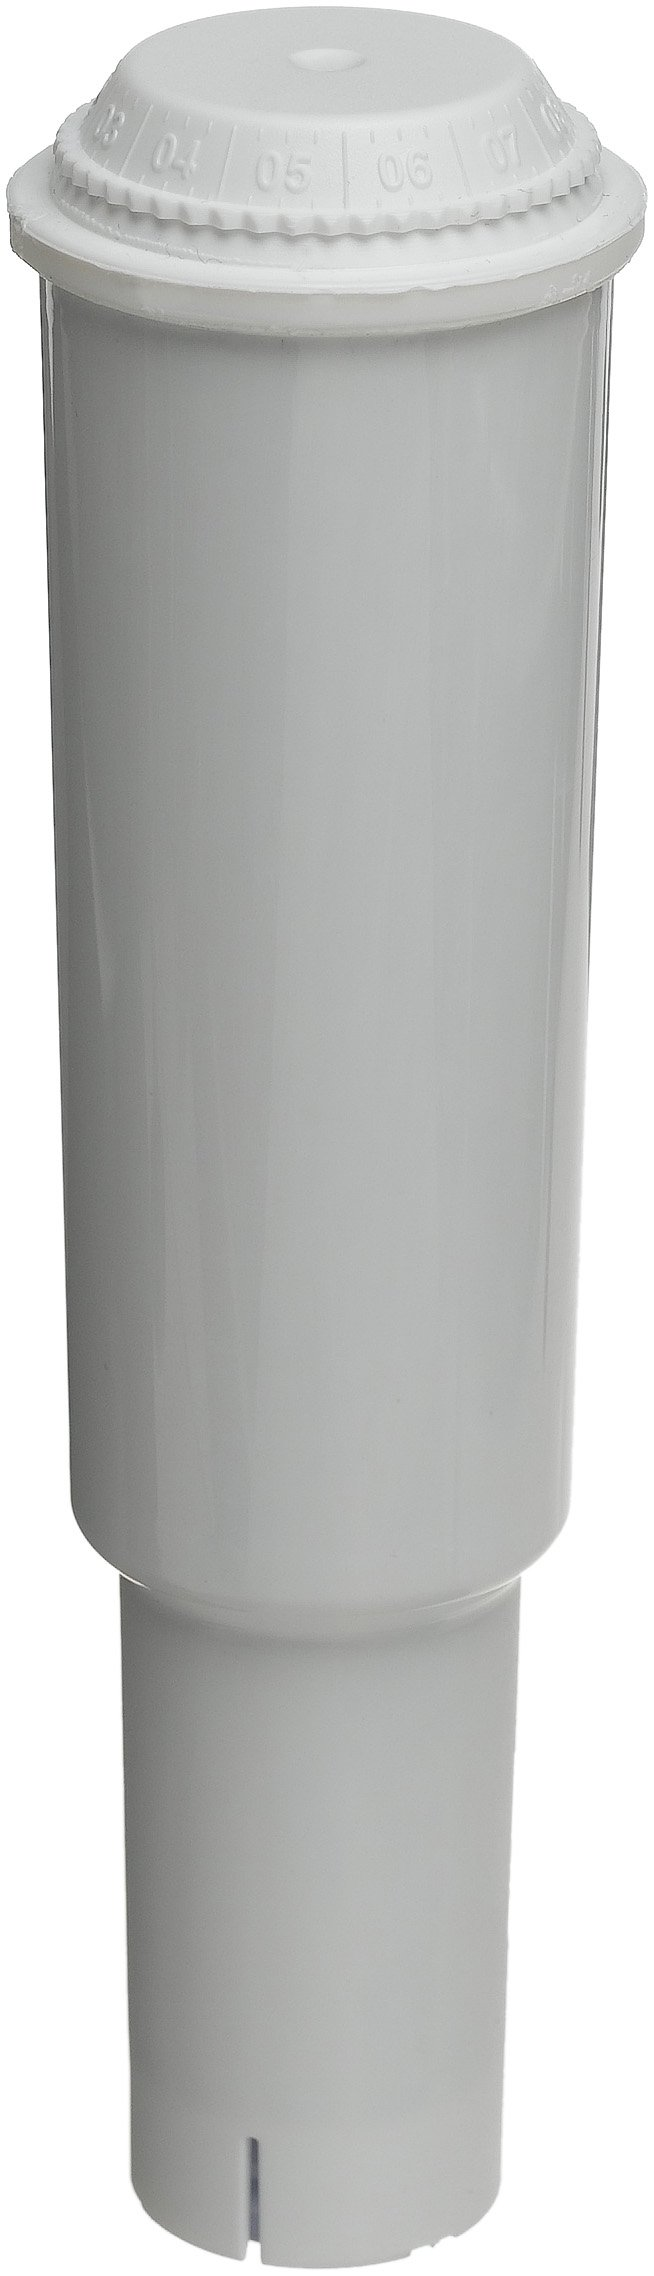 Jura 64553 CLEARYL  Water-Filter Cartridge, White by Jura